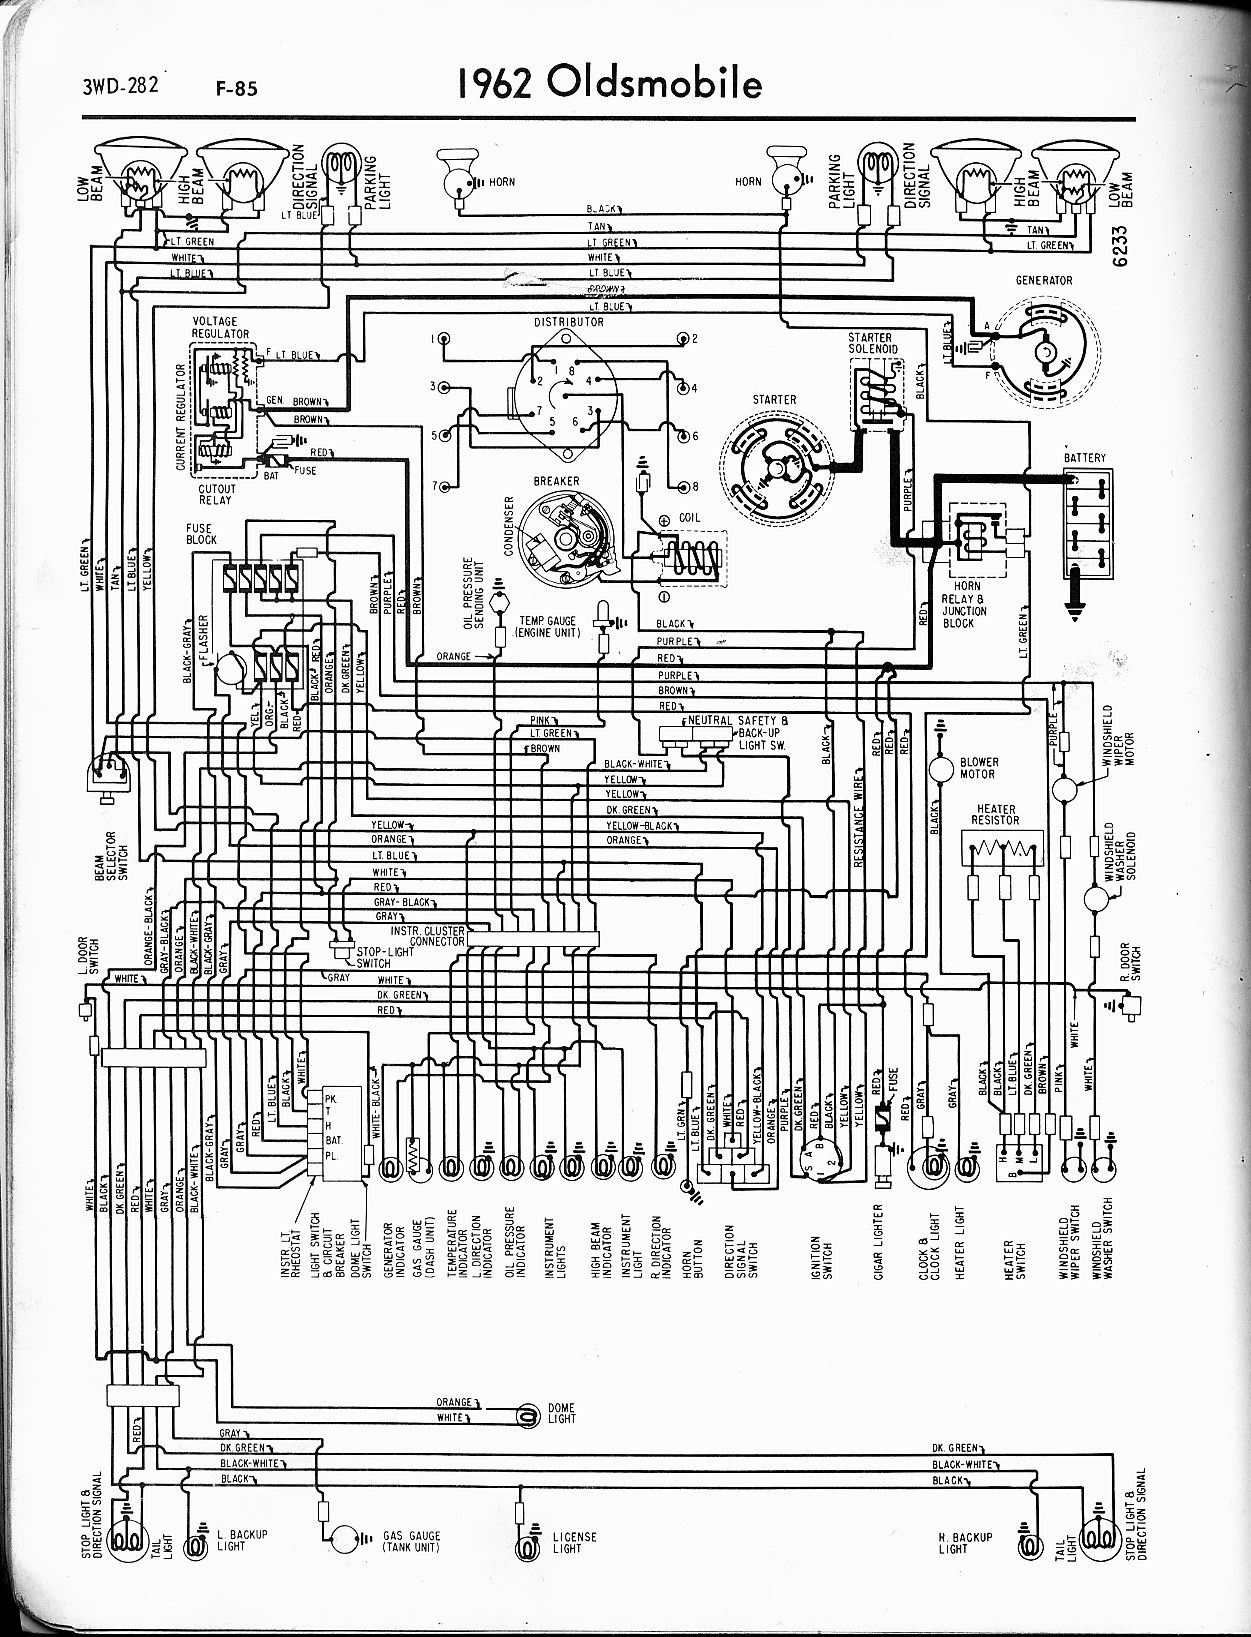 MWire5765 282 oldsmobile wiring diagrams the old car manual project Basic Turn Signal Wiring Diagram at crackthecode.co